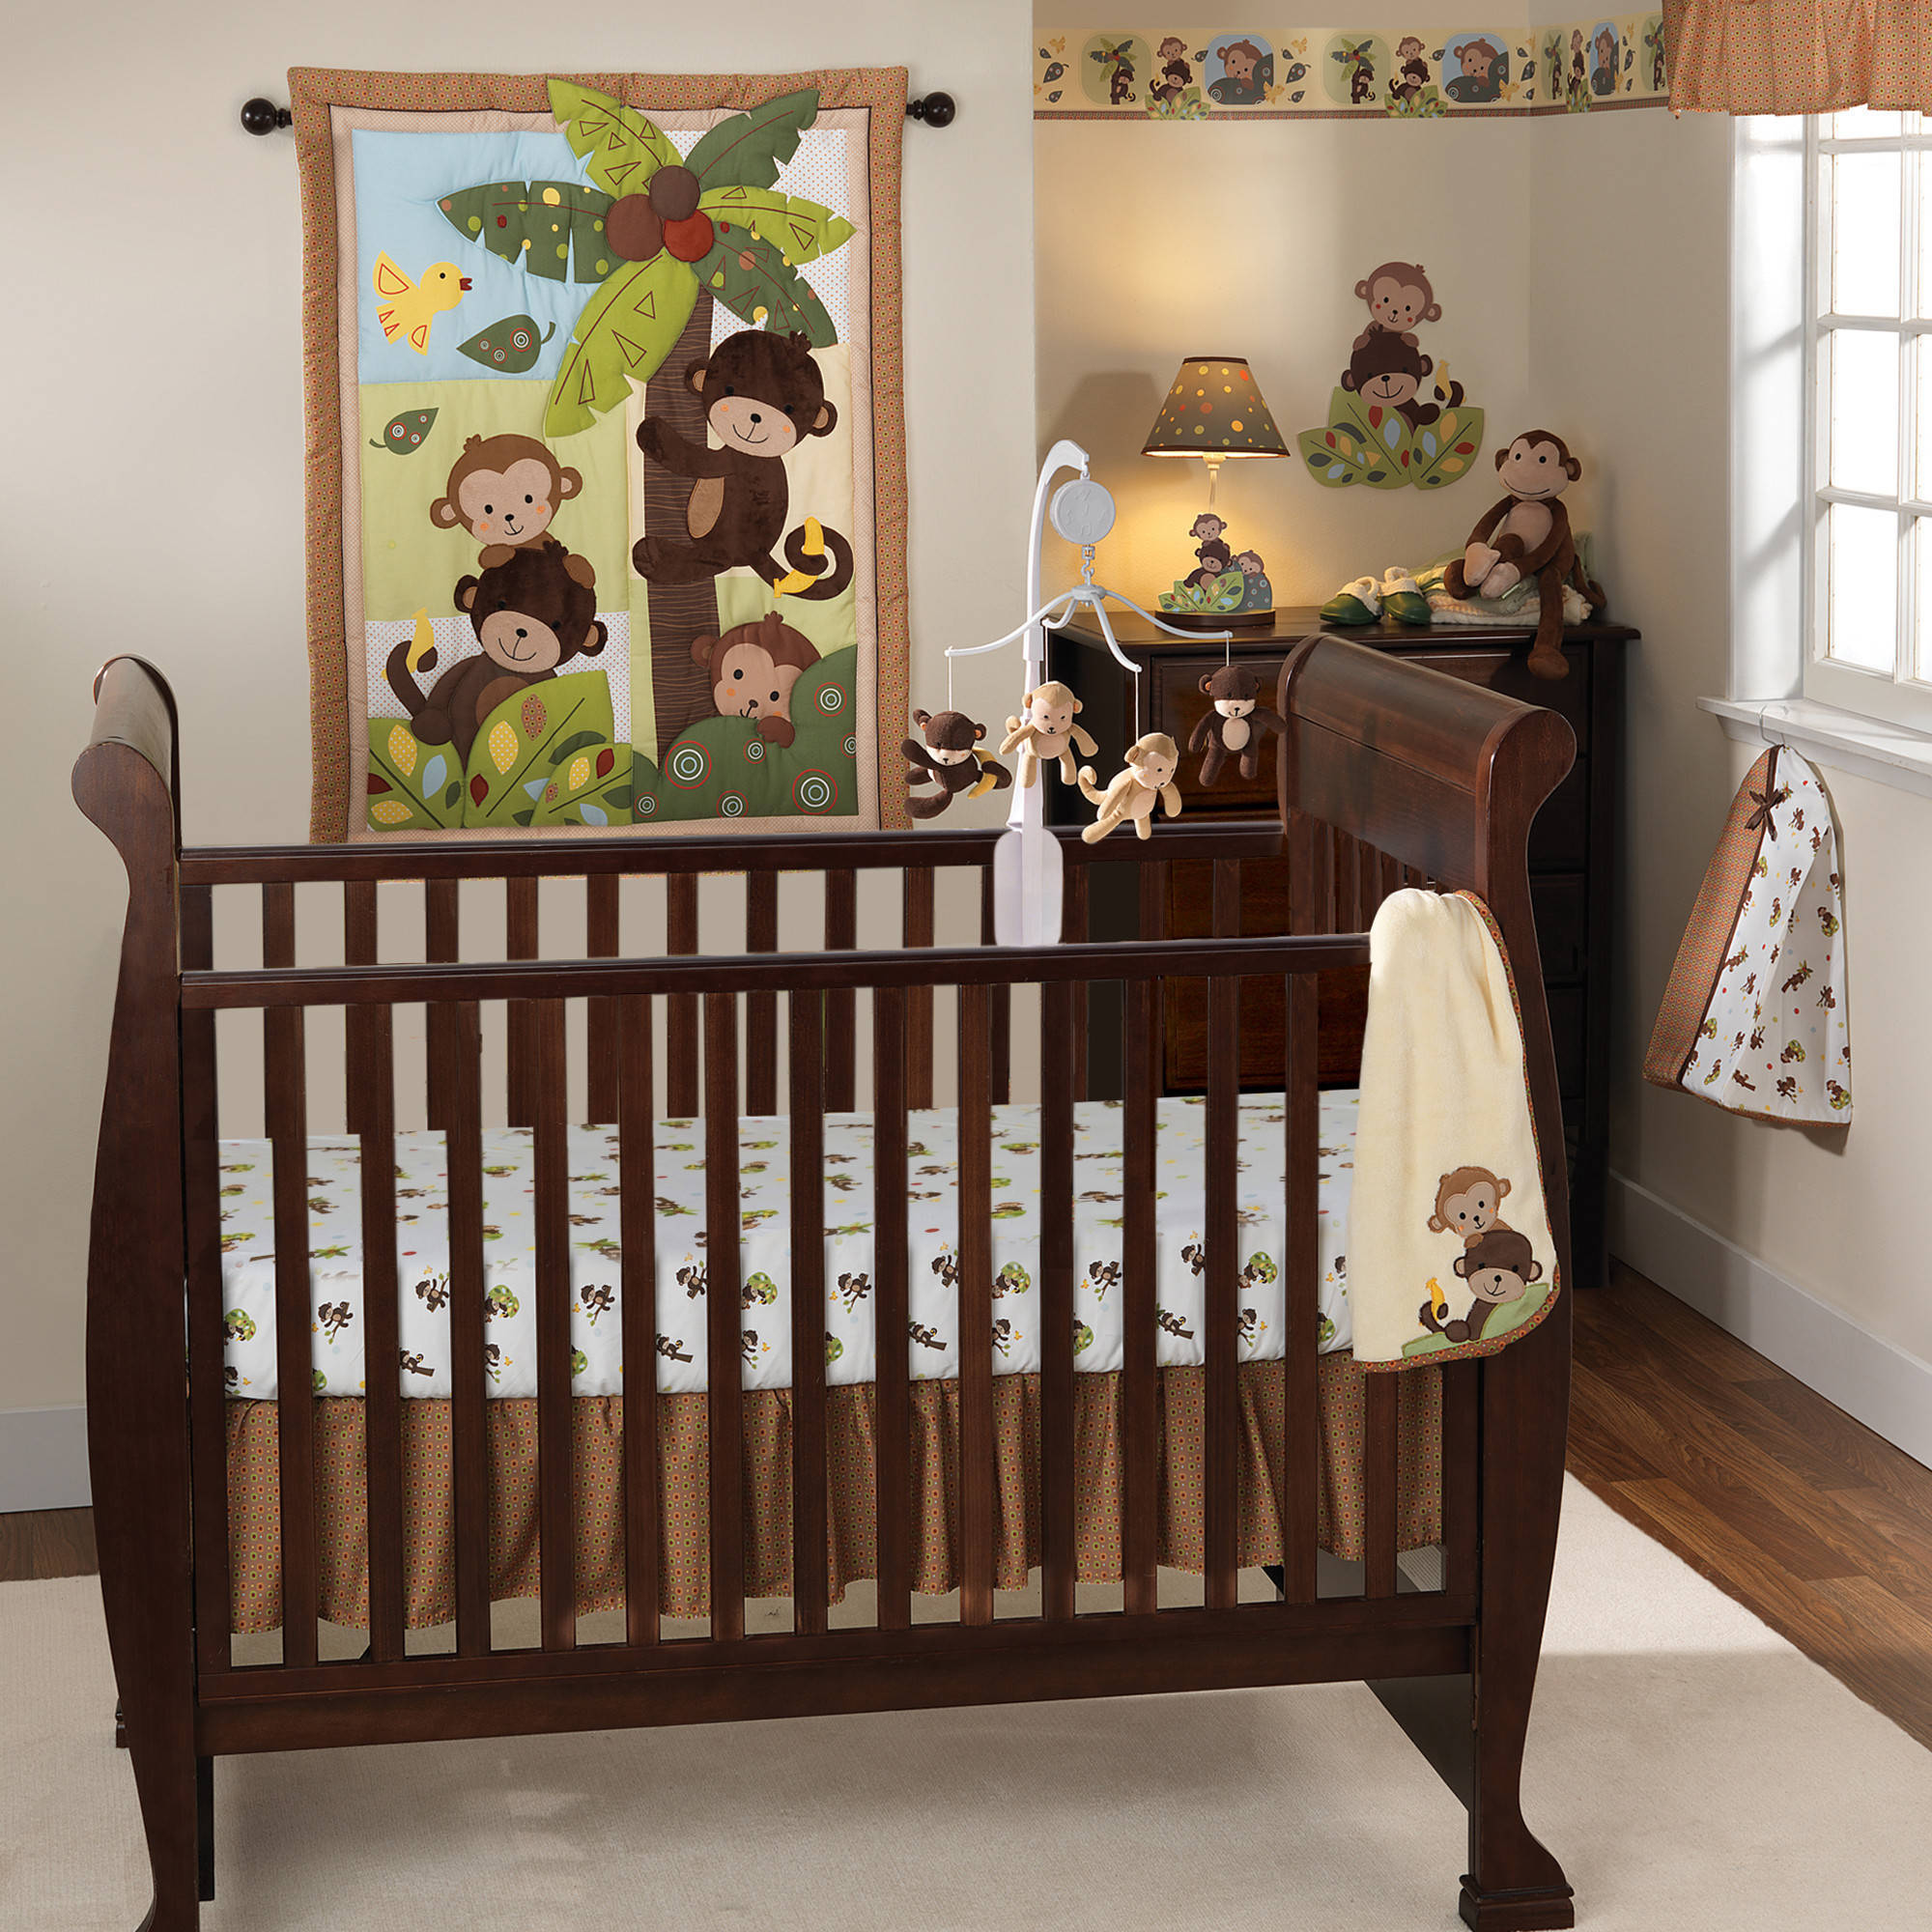 Bedtime Originals by Lambs & Ivy - Curly Tails Crib Bedding 3-Piece Set